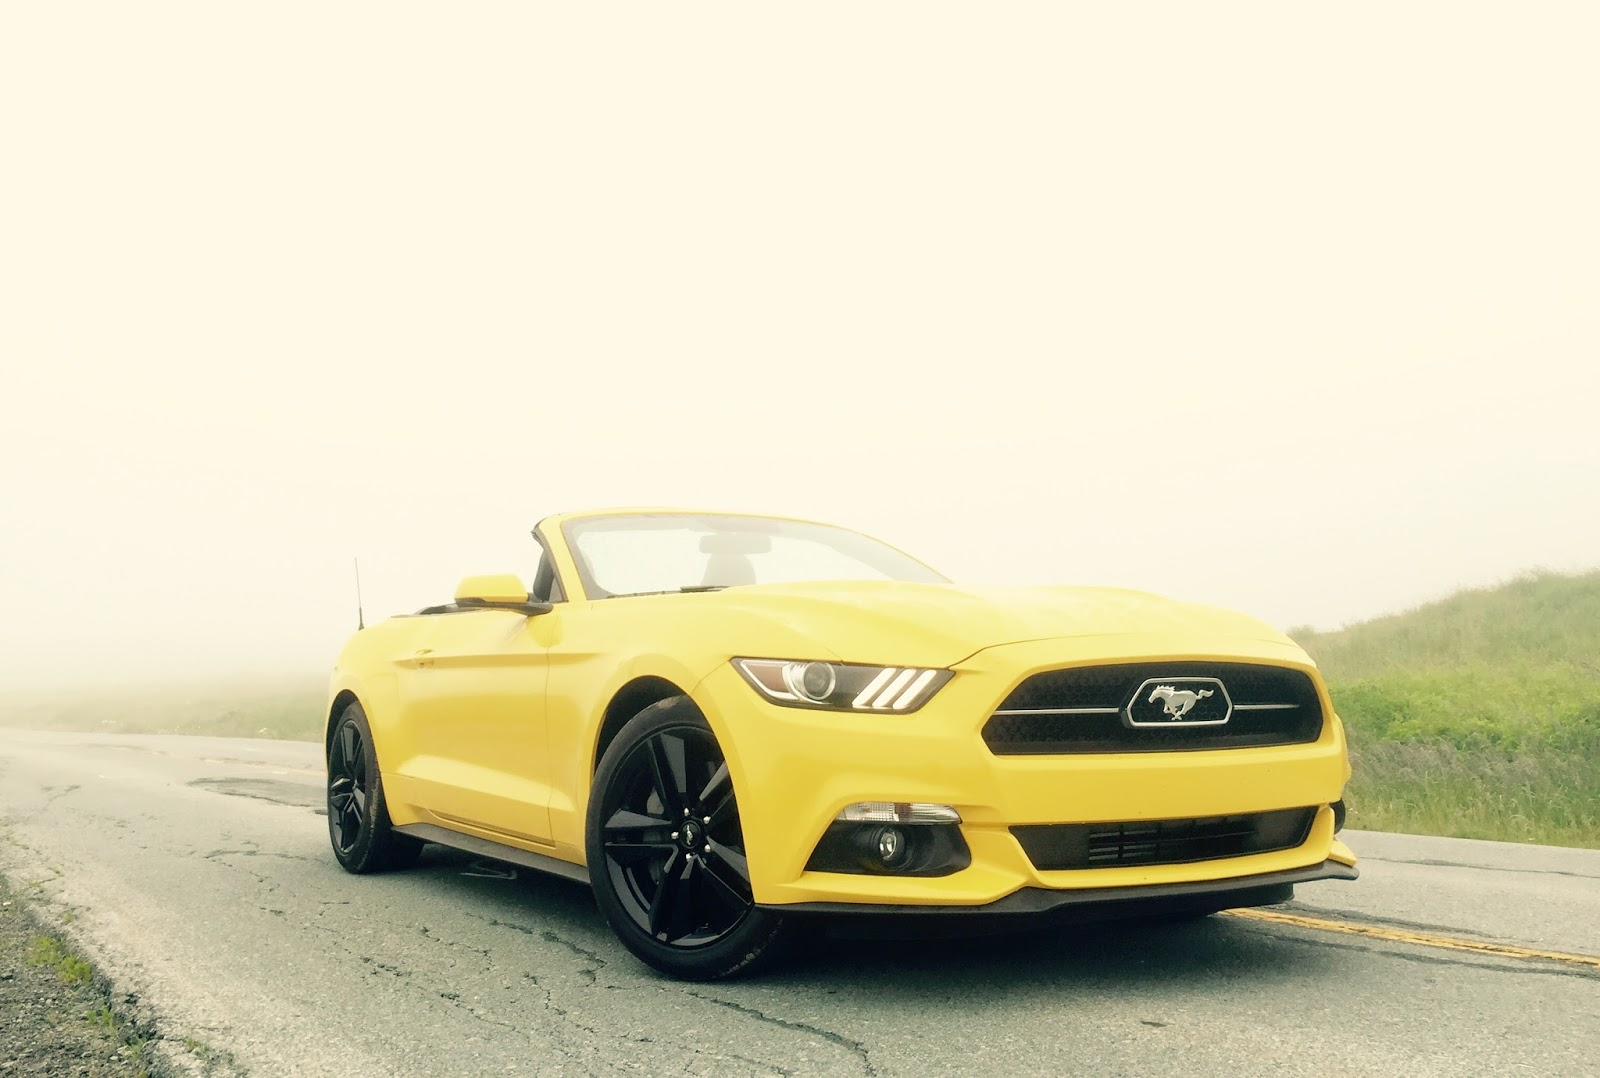 2015 ford mustang ecoboost convertible review - great car with